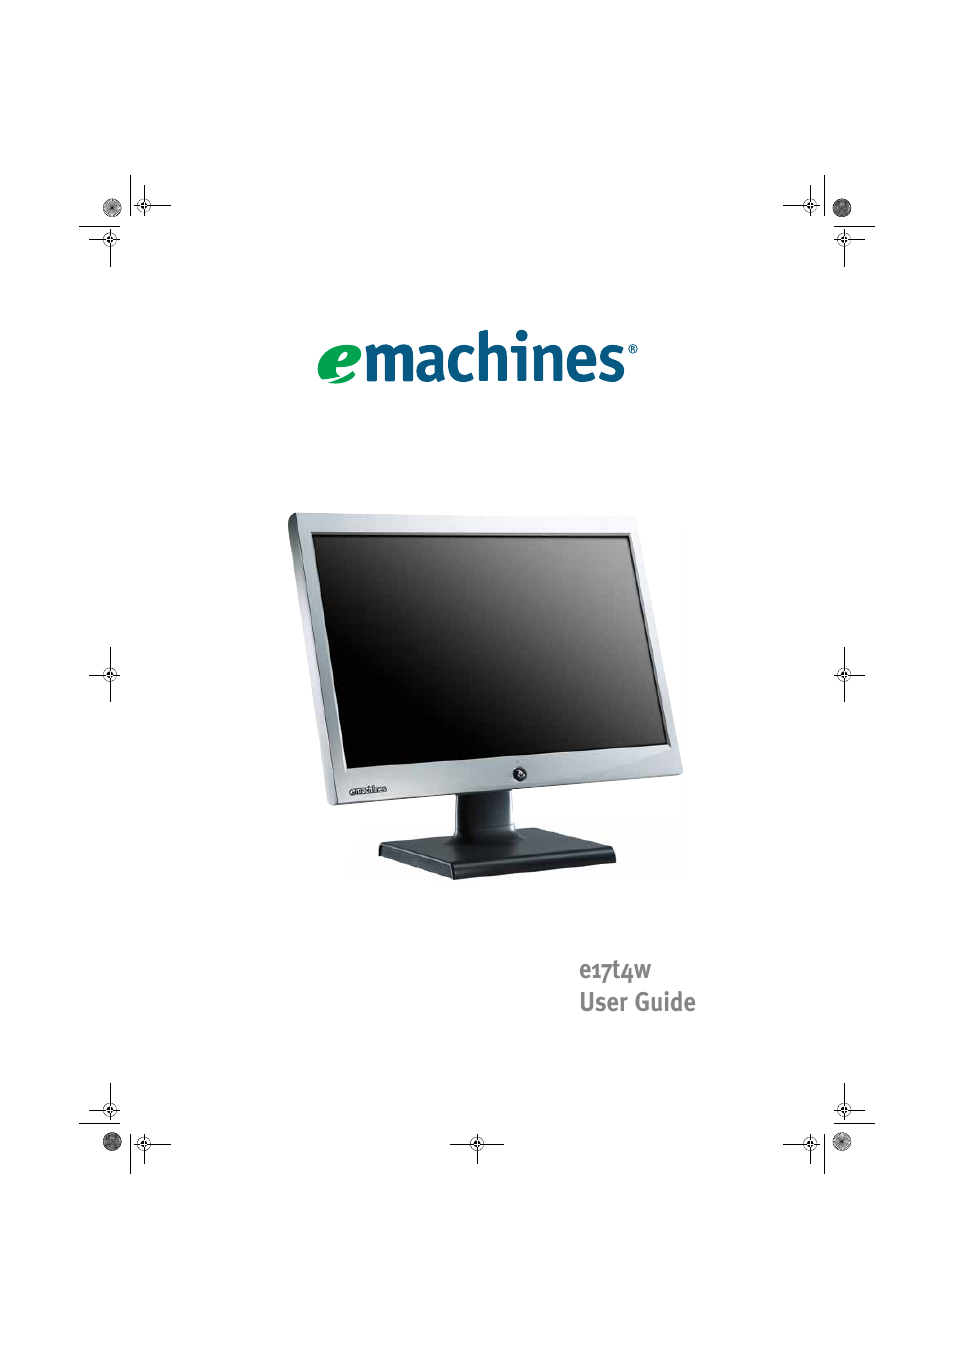 emachines e17t4w user manual 36 pages rh manualsdir com Old eMachines Desktop Old eMachines Desktop